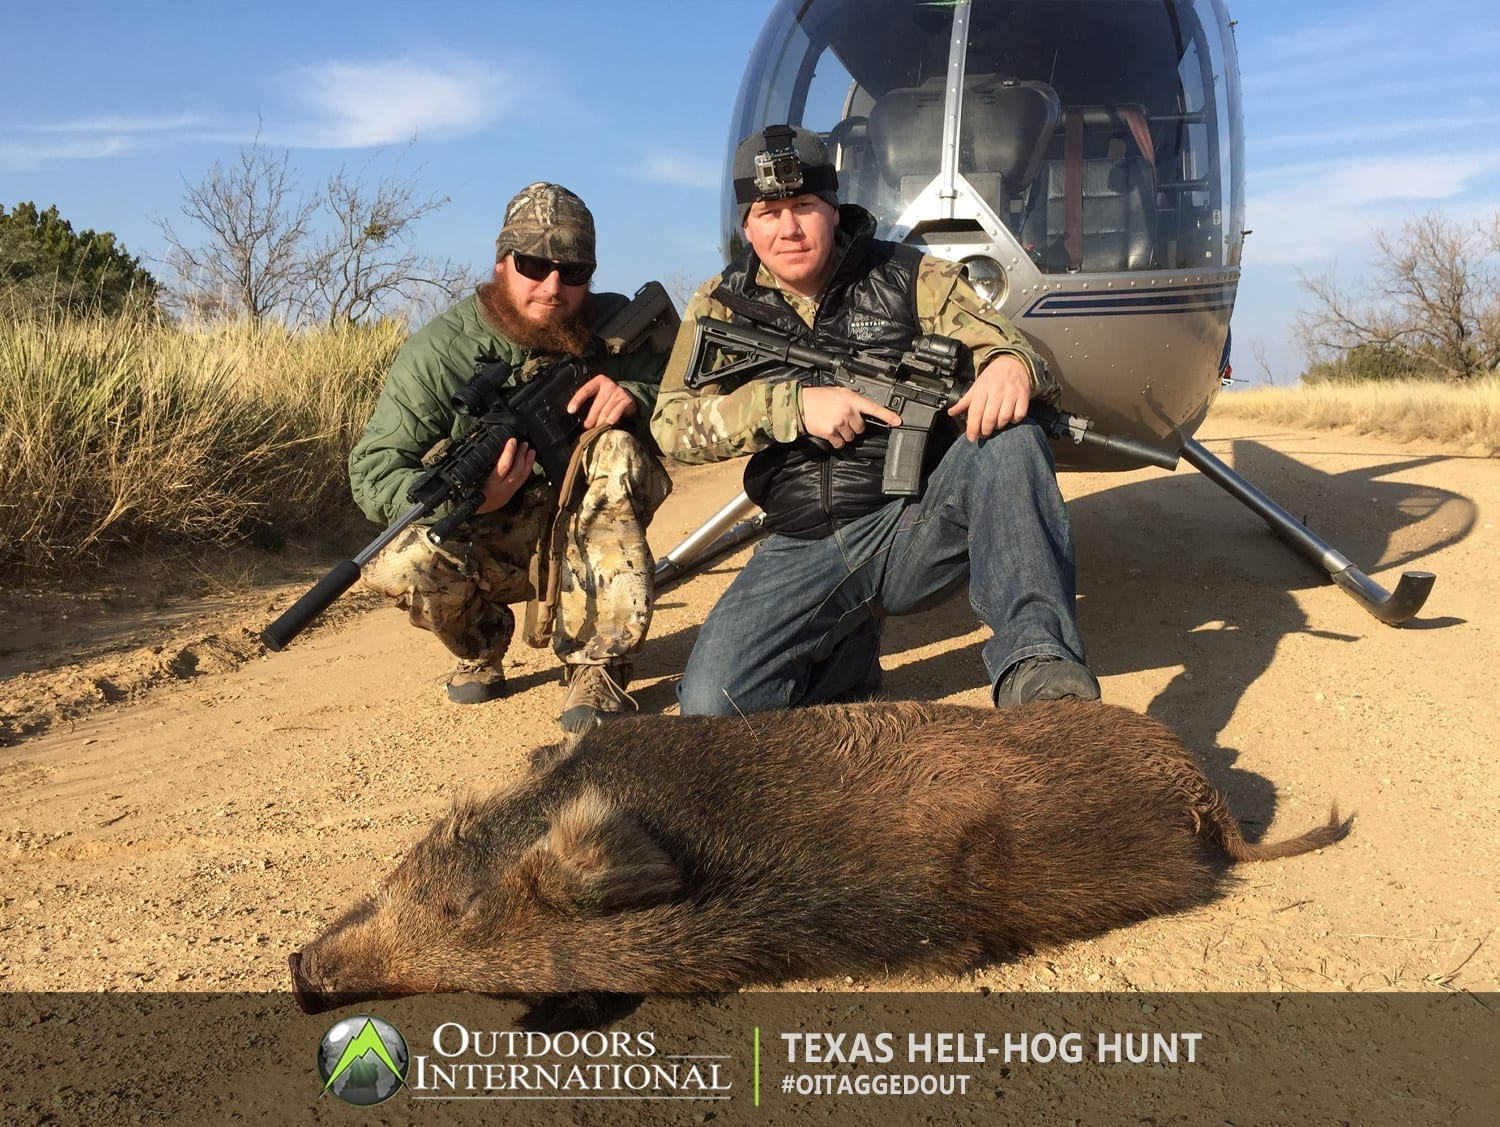 LOTS of pigs and high success is the norm. On a good heli-hog hunting outing, you can shoot over 50 hogs!